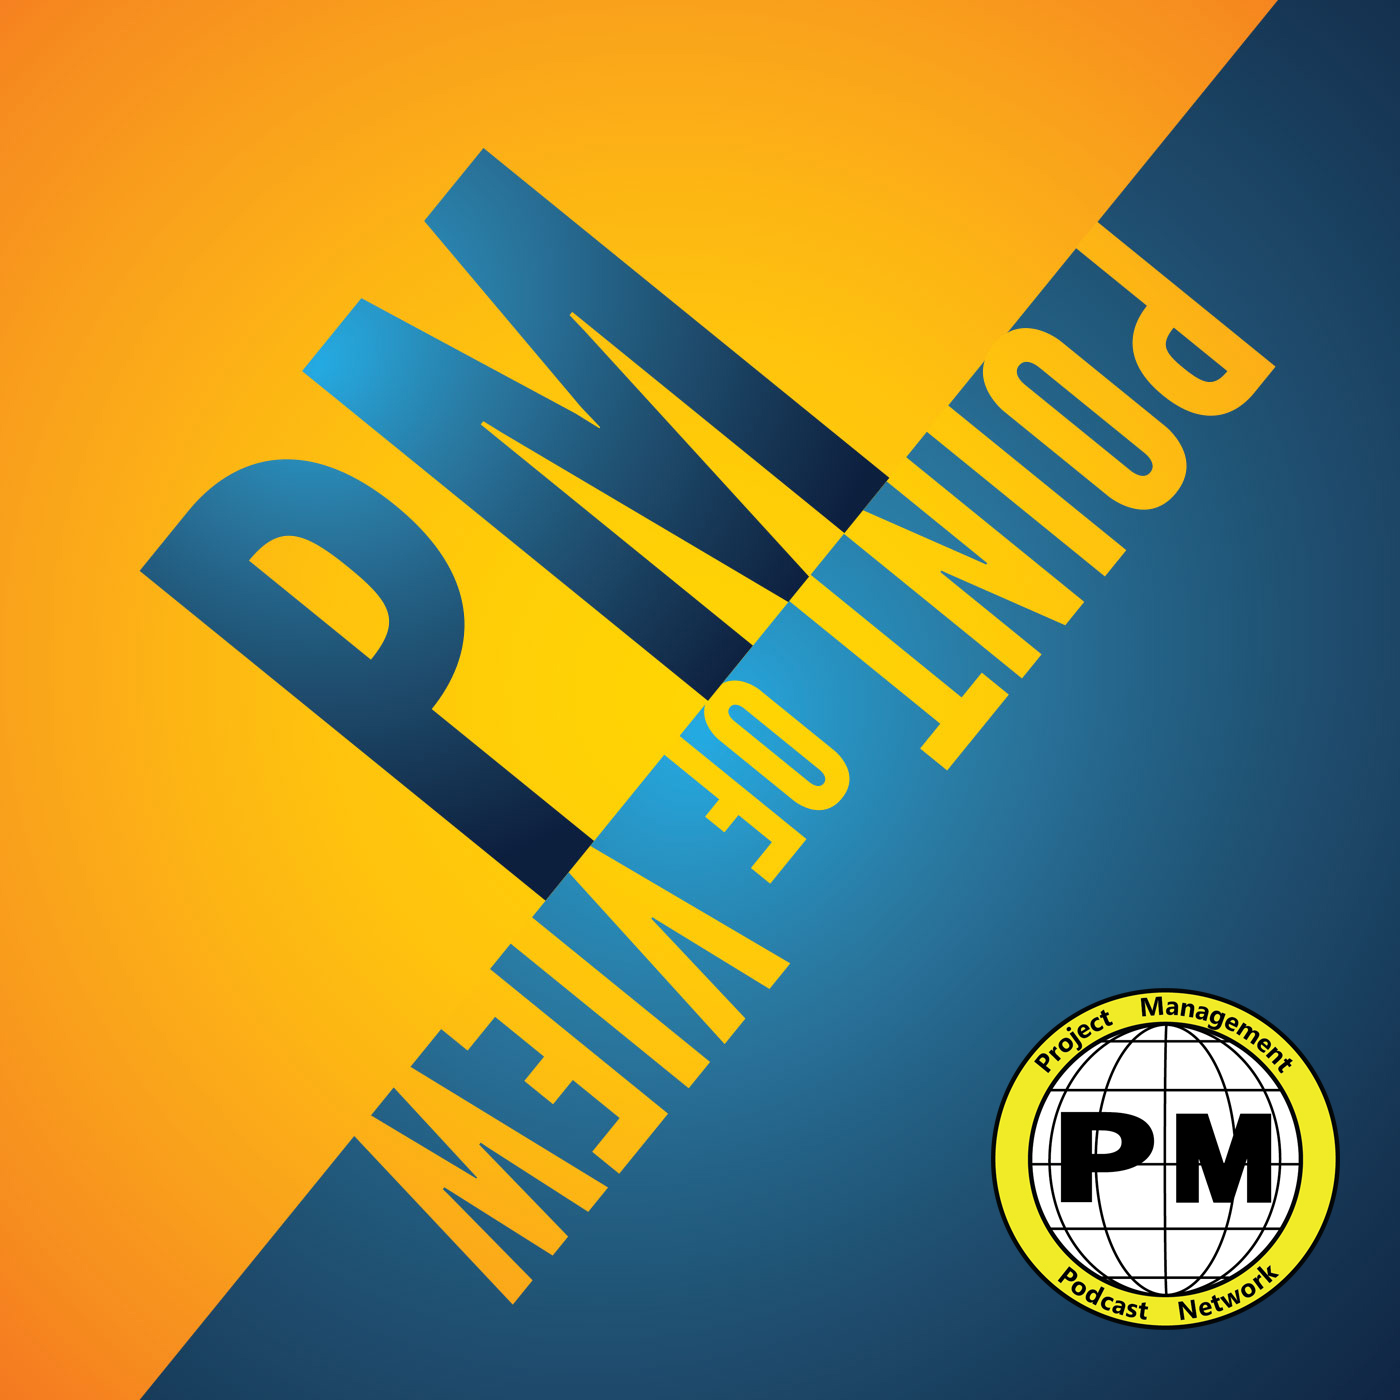 PM Point of View logo